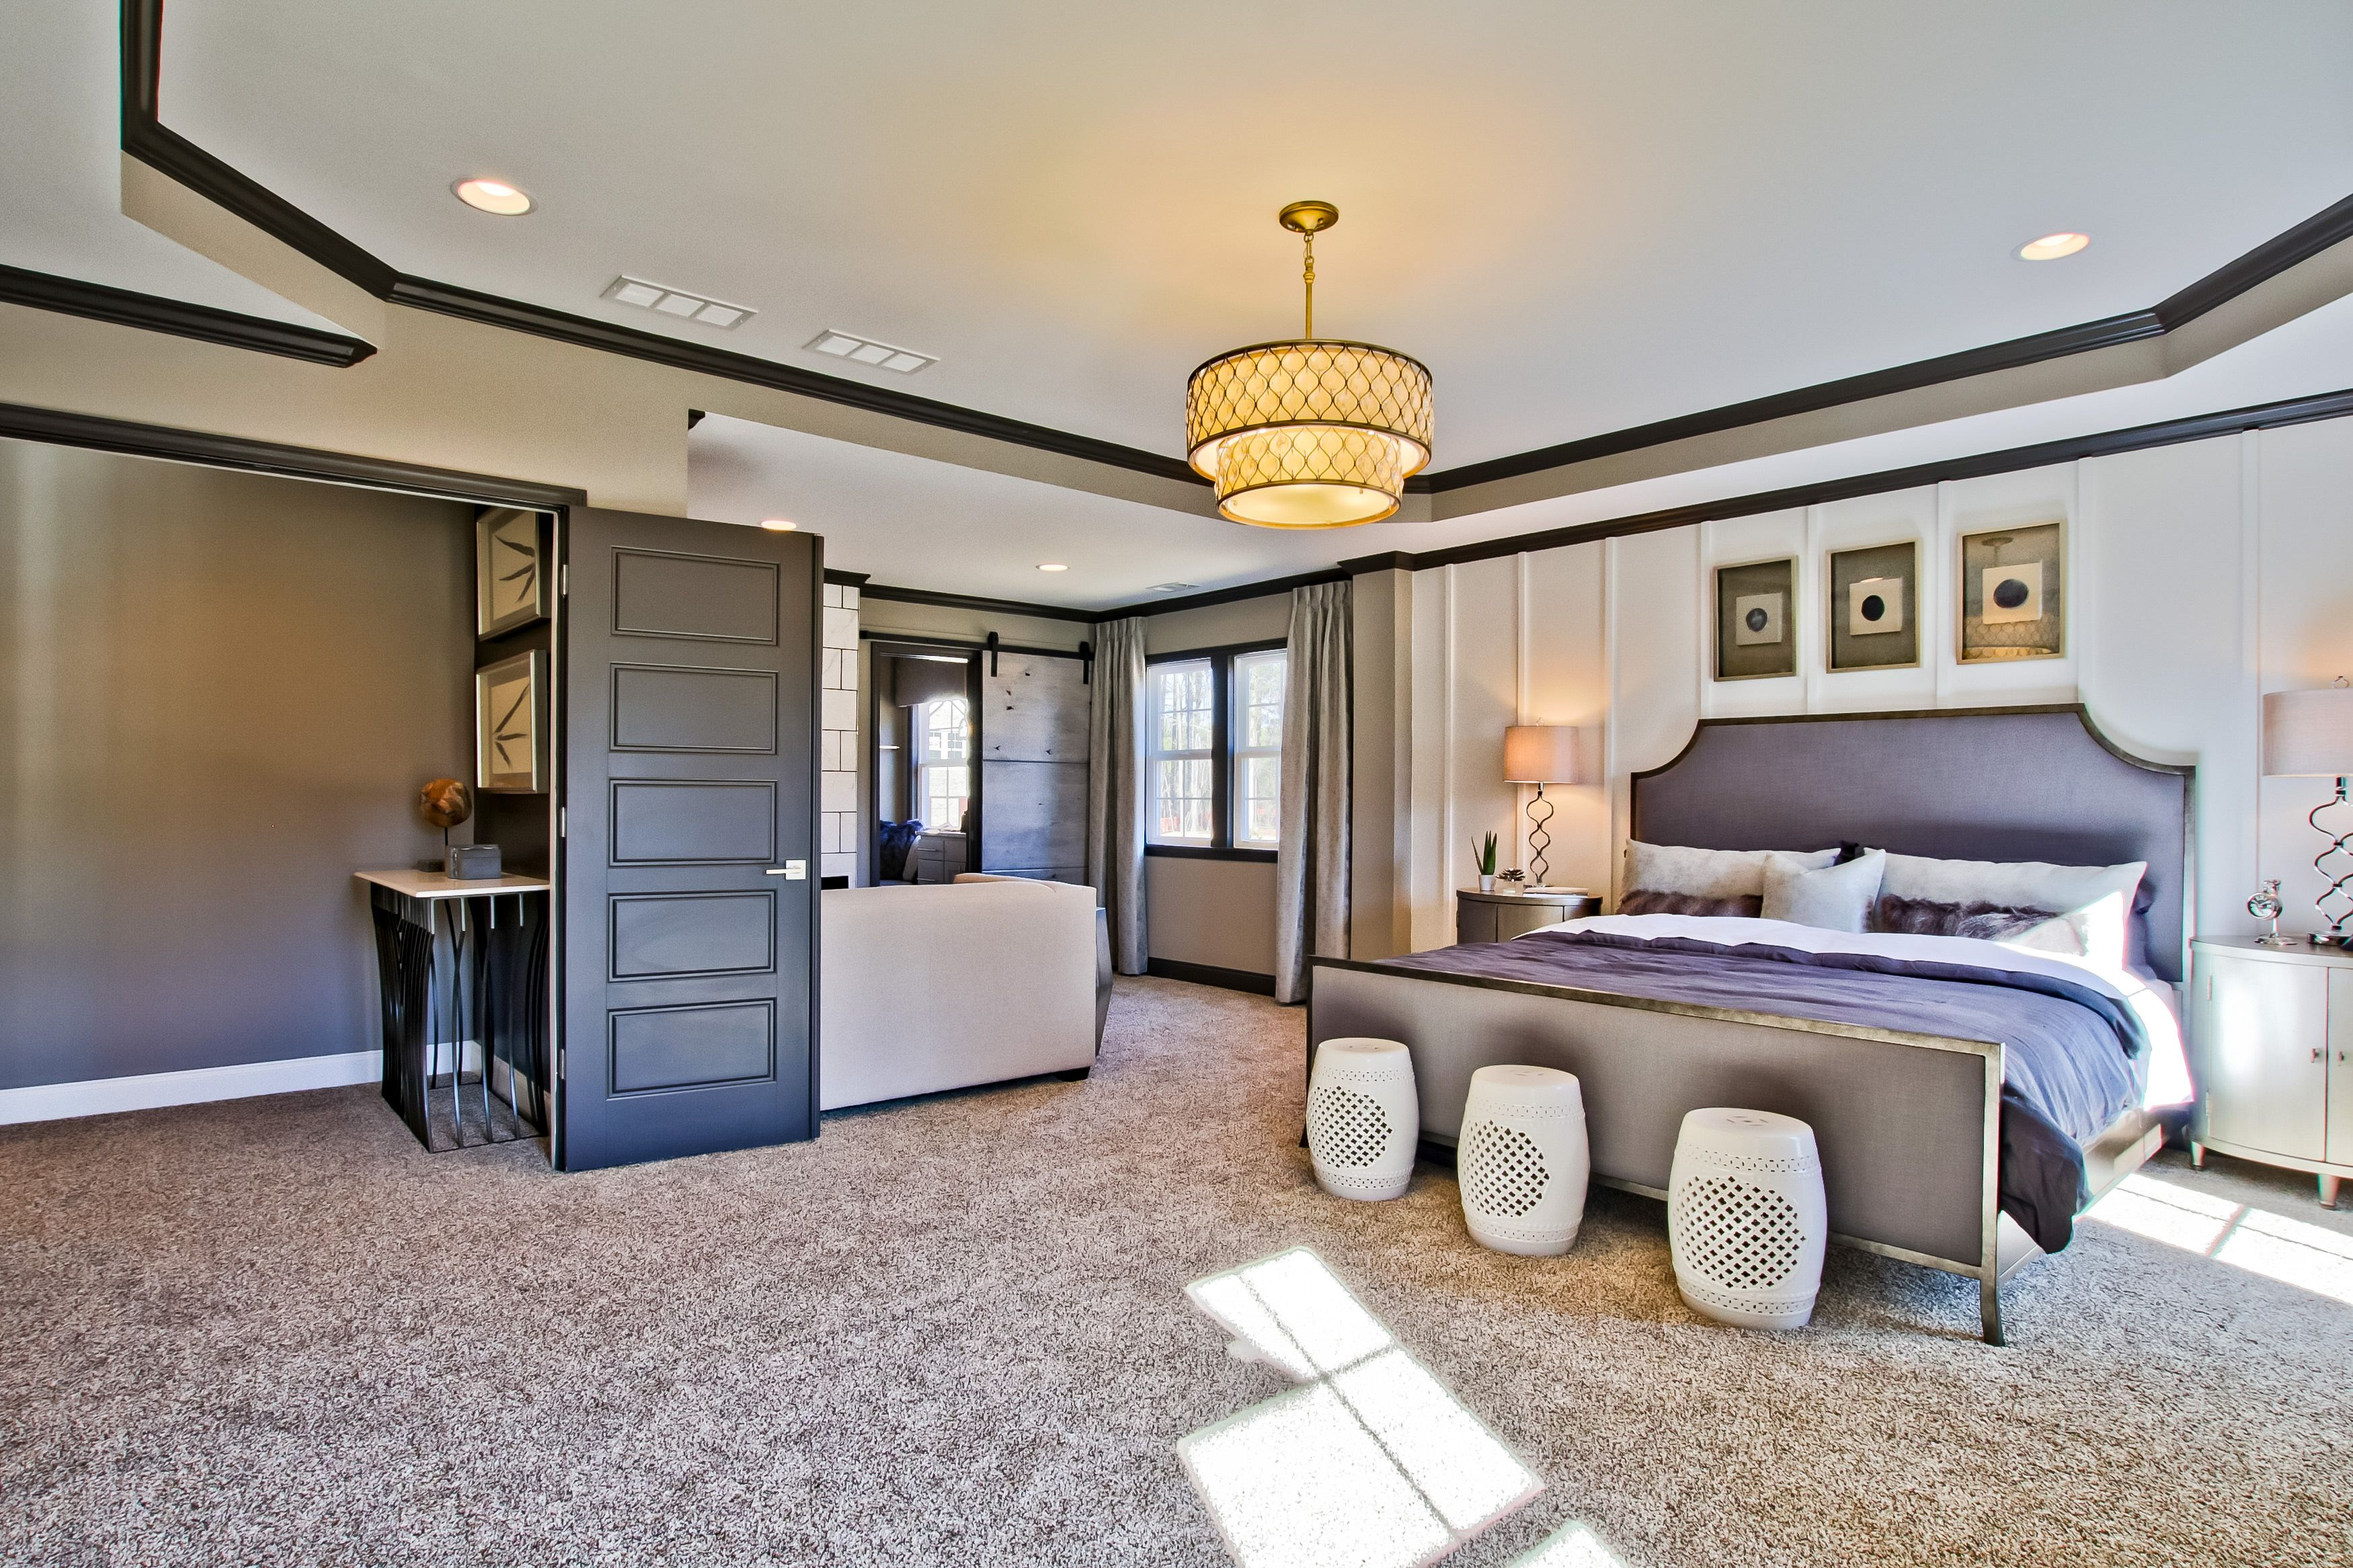 Enjoy This Large Master Bedroom With Trey Ceilings A Sitting Area Sliding Barn Door And Attached Bathroom In Your New Home S New Homes Home Bedroom Layouts